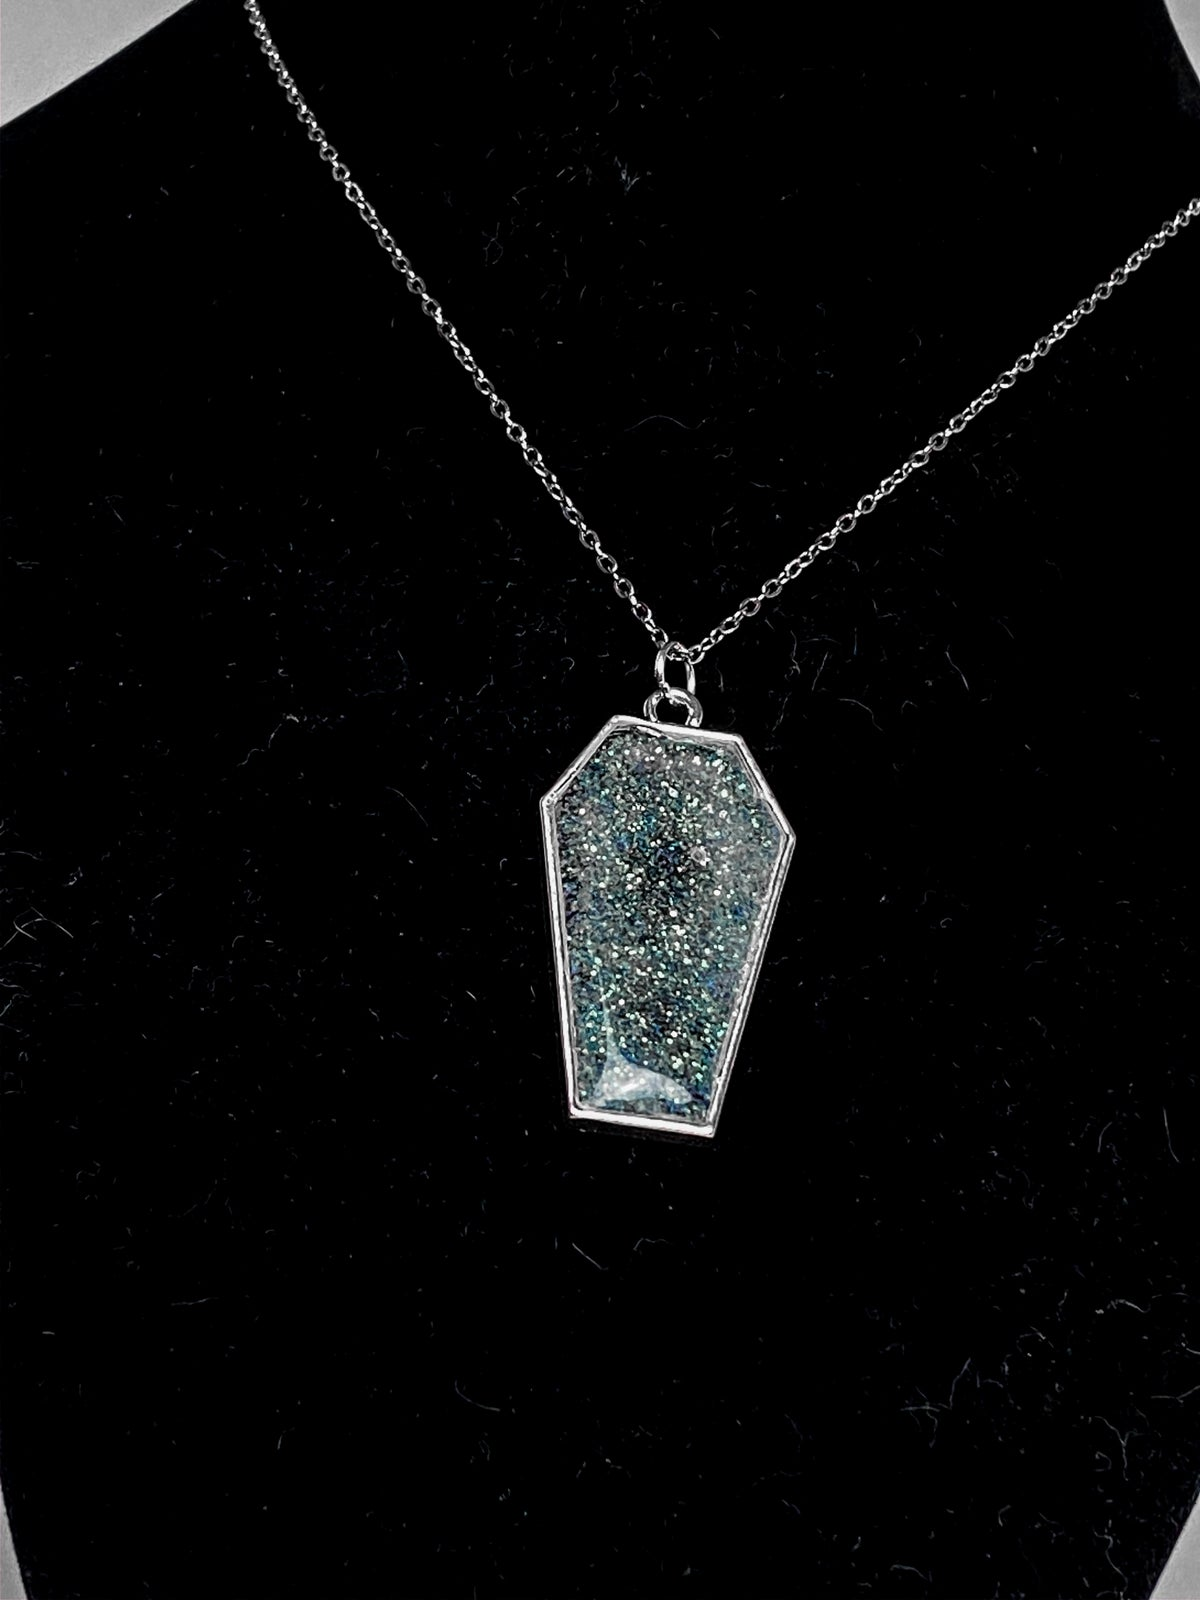 Image of My Moonlight Necklace